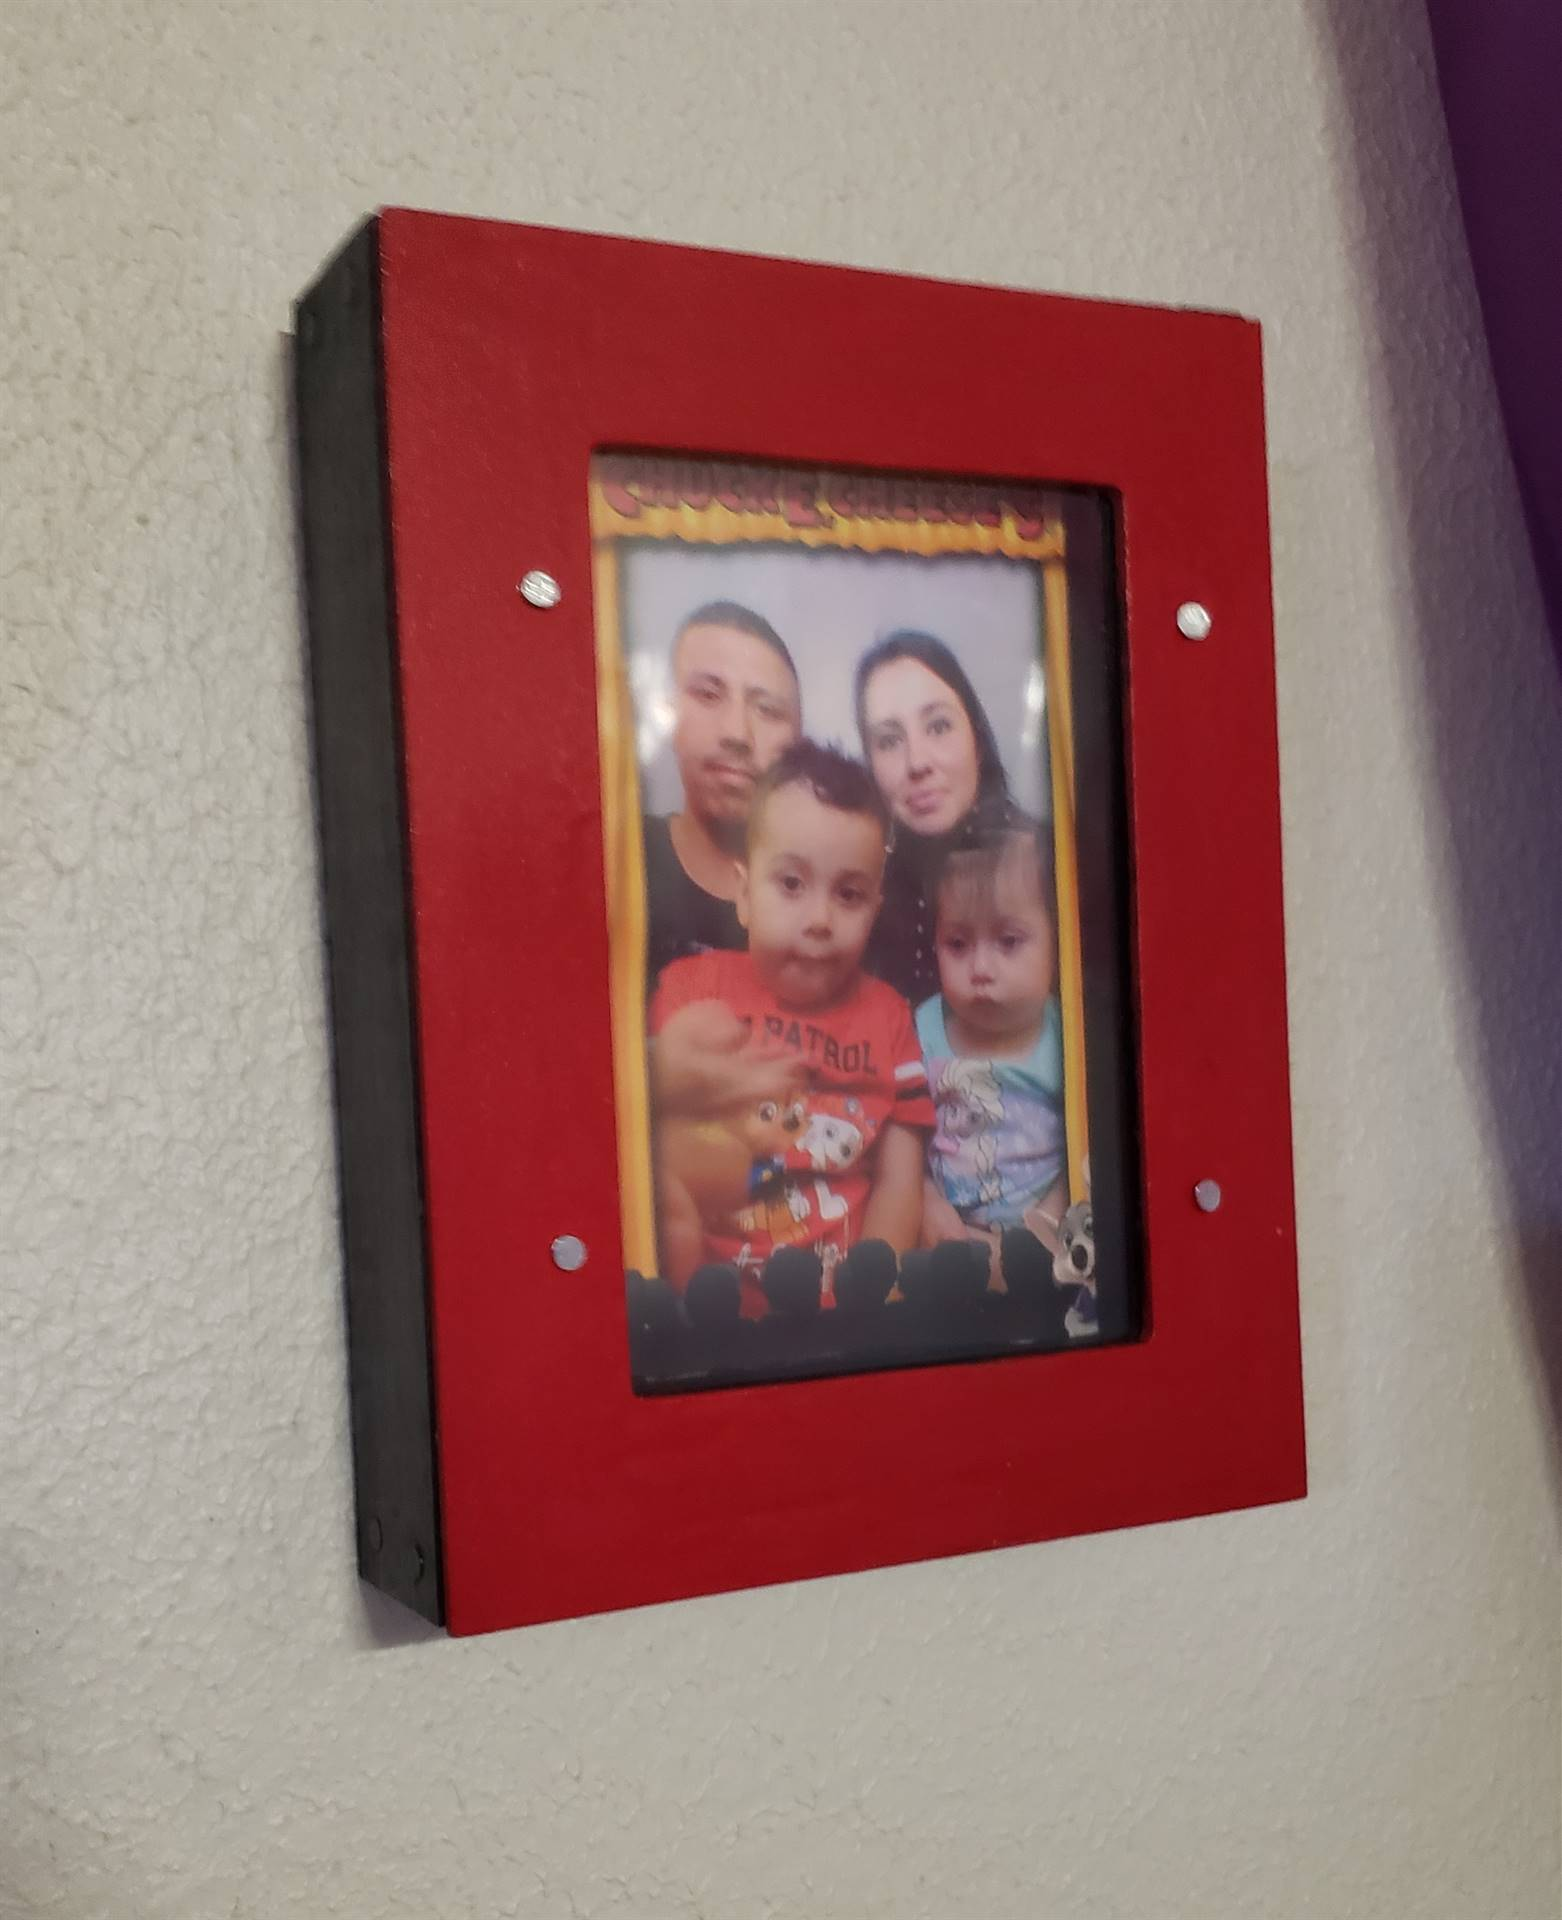 The little girl's Home Depot project was a picture frame, she painted it red, and her family pic